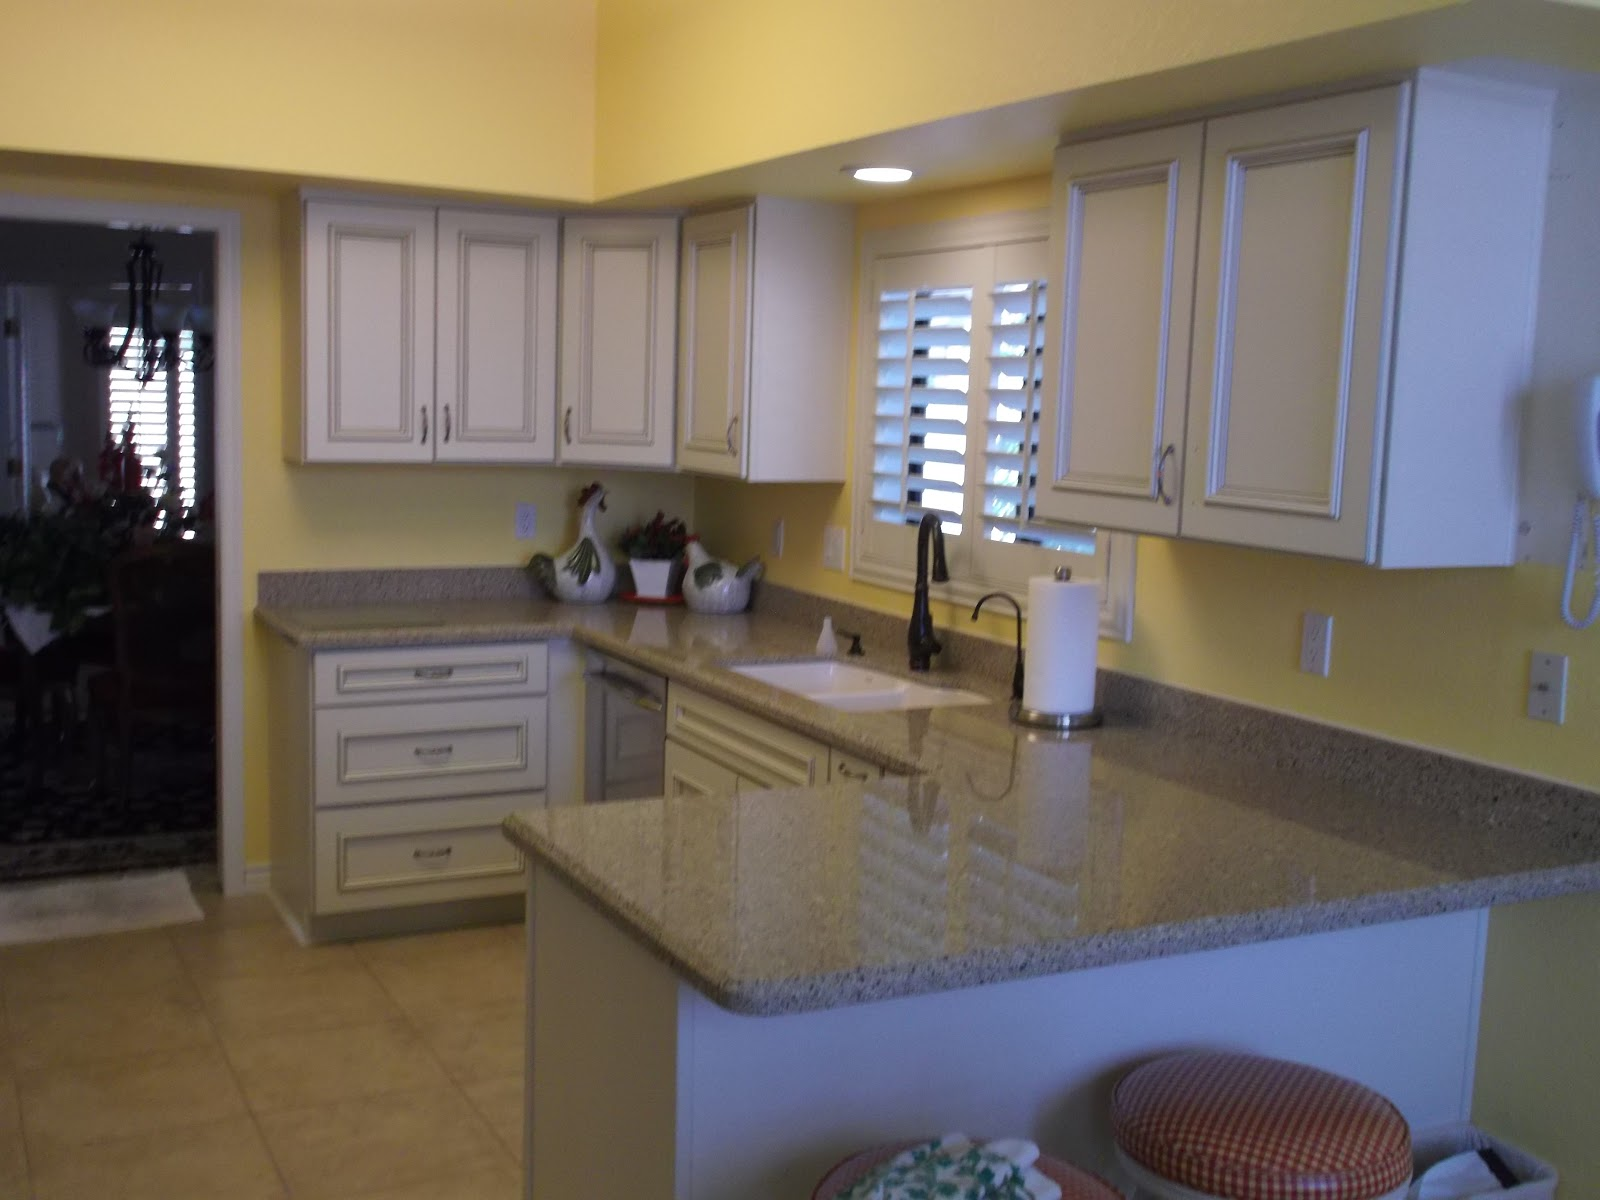 Phoenix Kitchen Cabinets Phoenix Kitchen Cabinets Home Remodeling Contractor